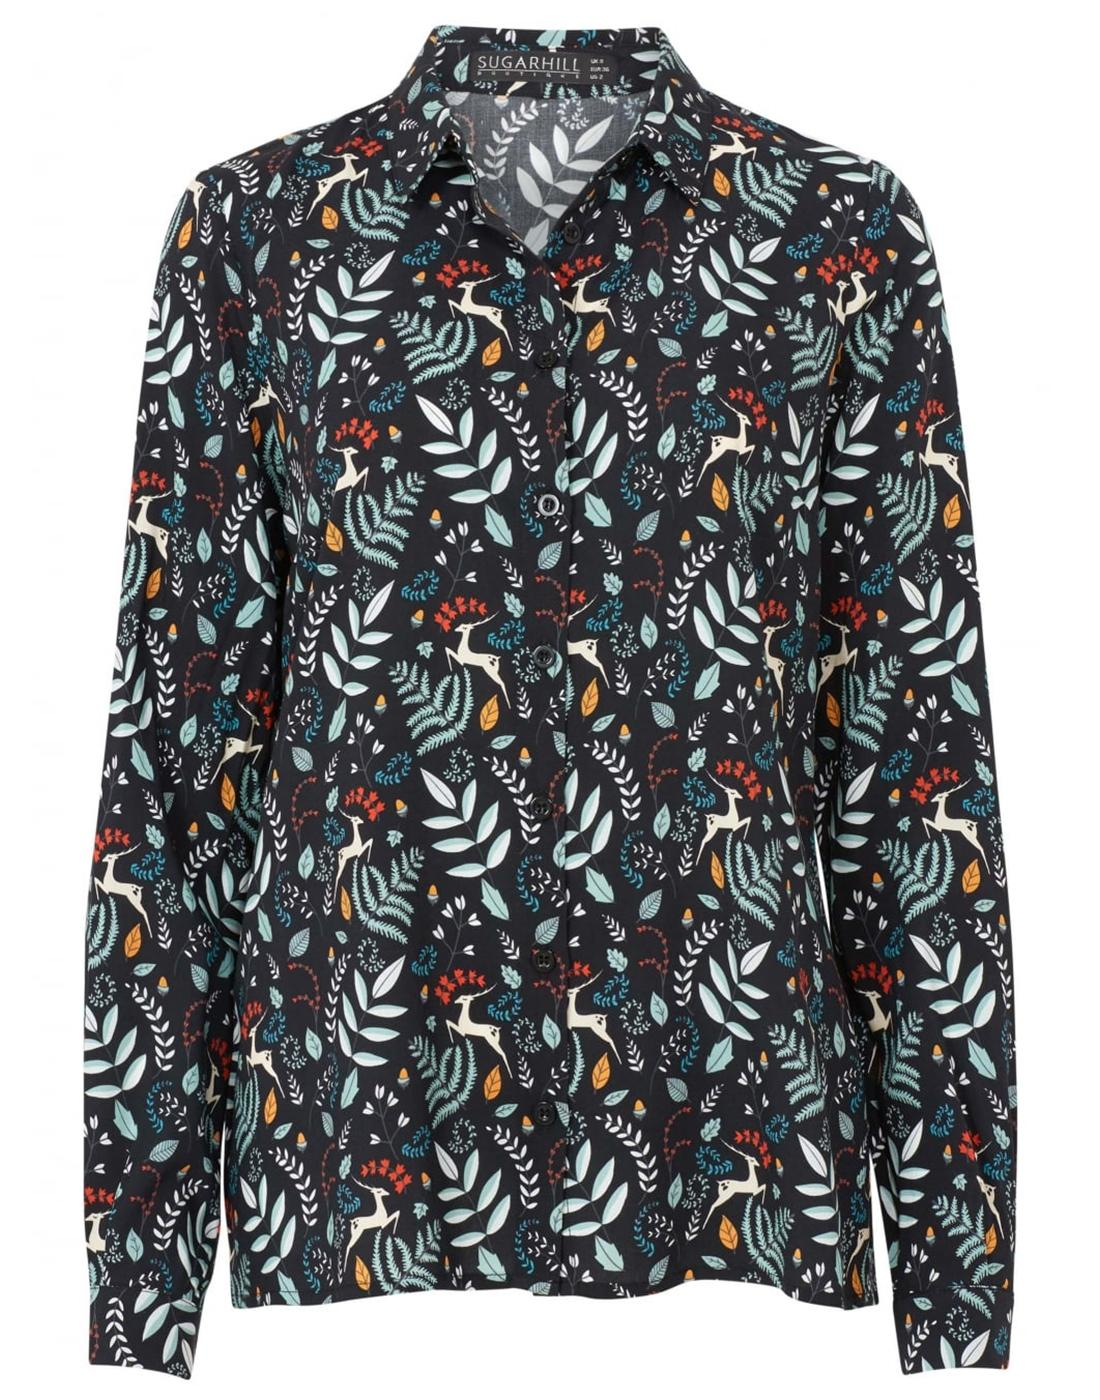 Erin SUGARHILL BOUTIQUE Enchanted Forest Shirt